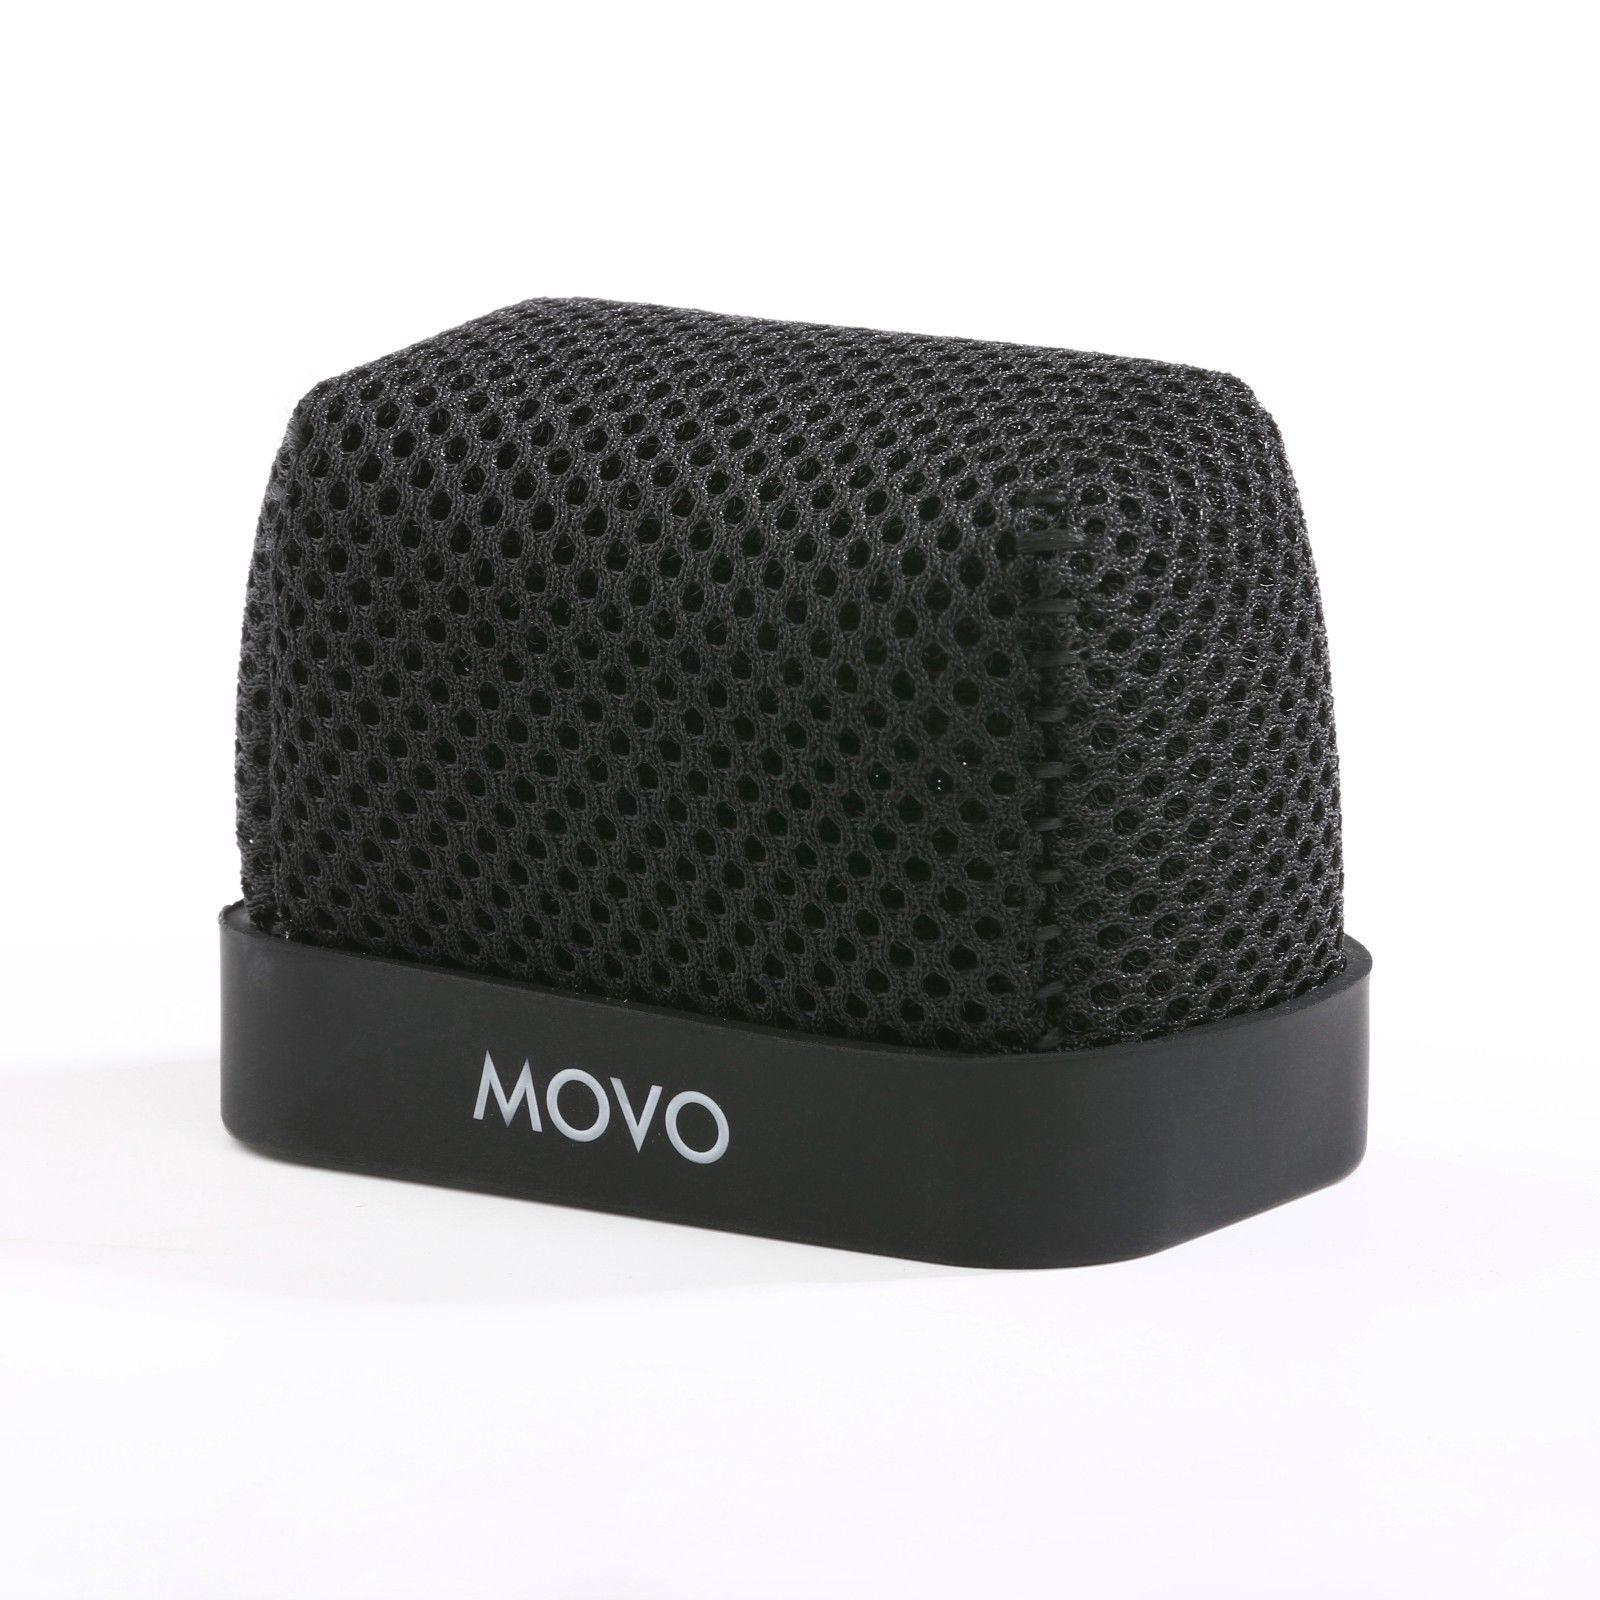 Movo WST-R10 Fitted Nylon Windscreen with Acoustic Foam Technology for Zoom IQ-6, Tascam... by